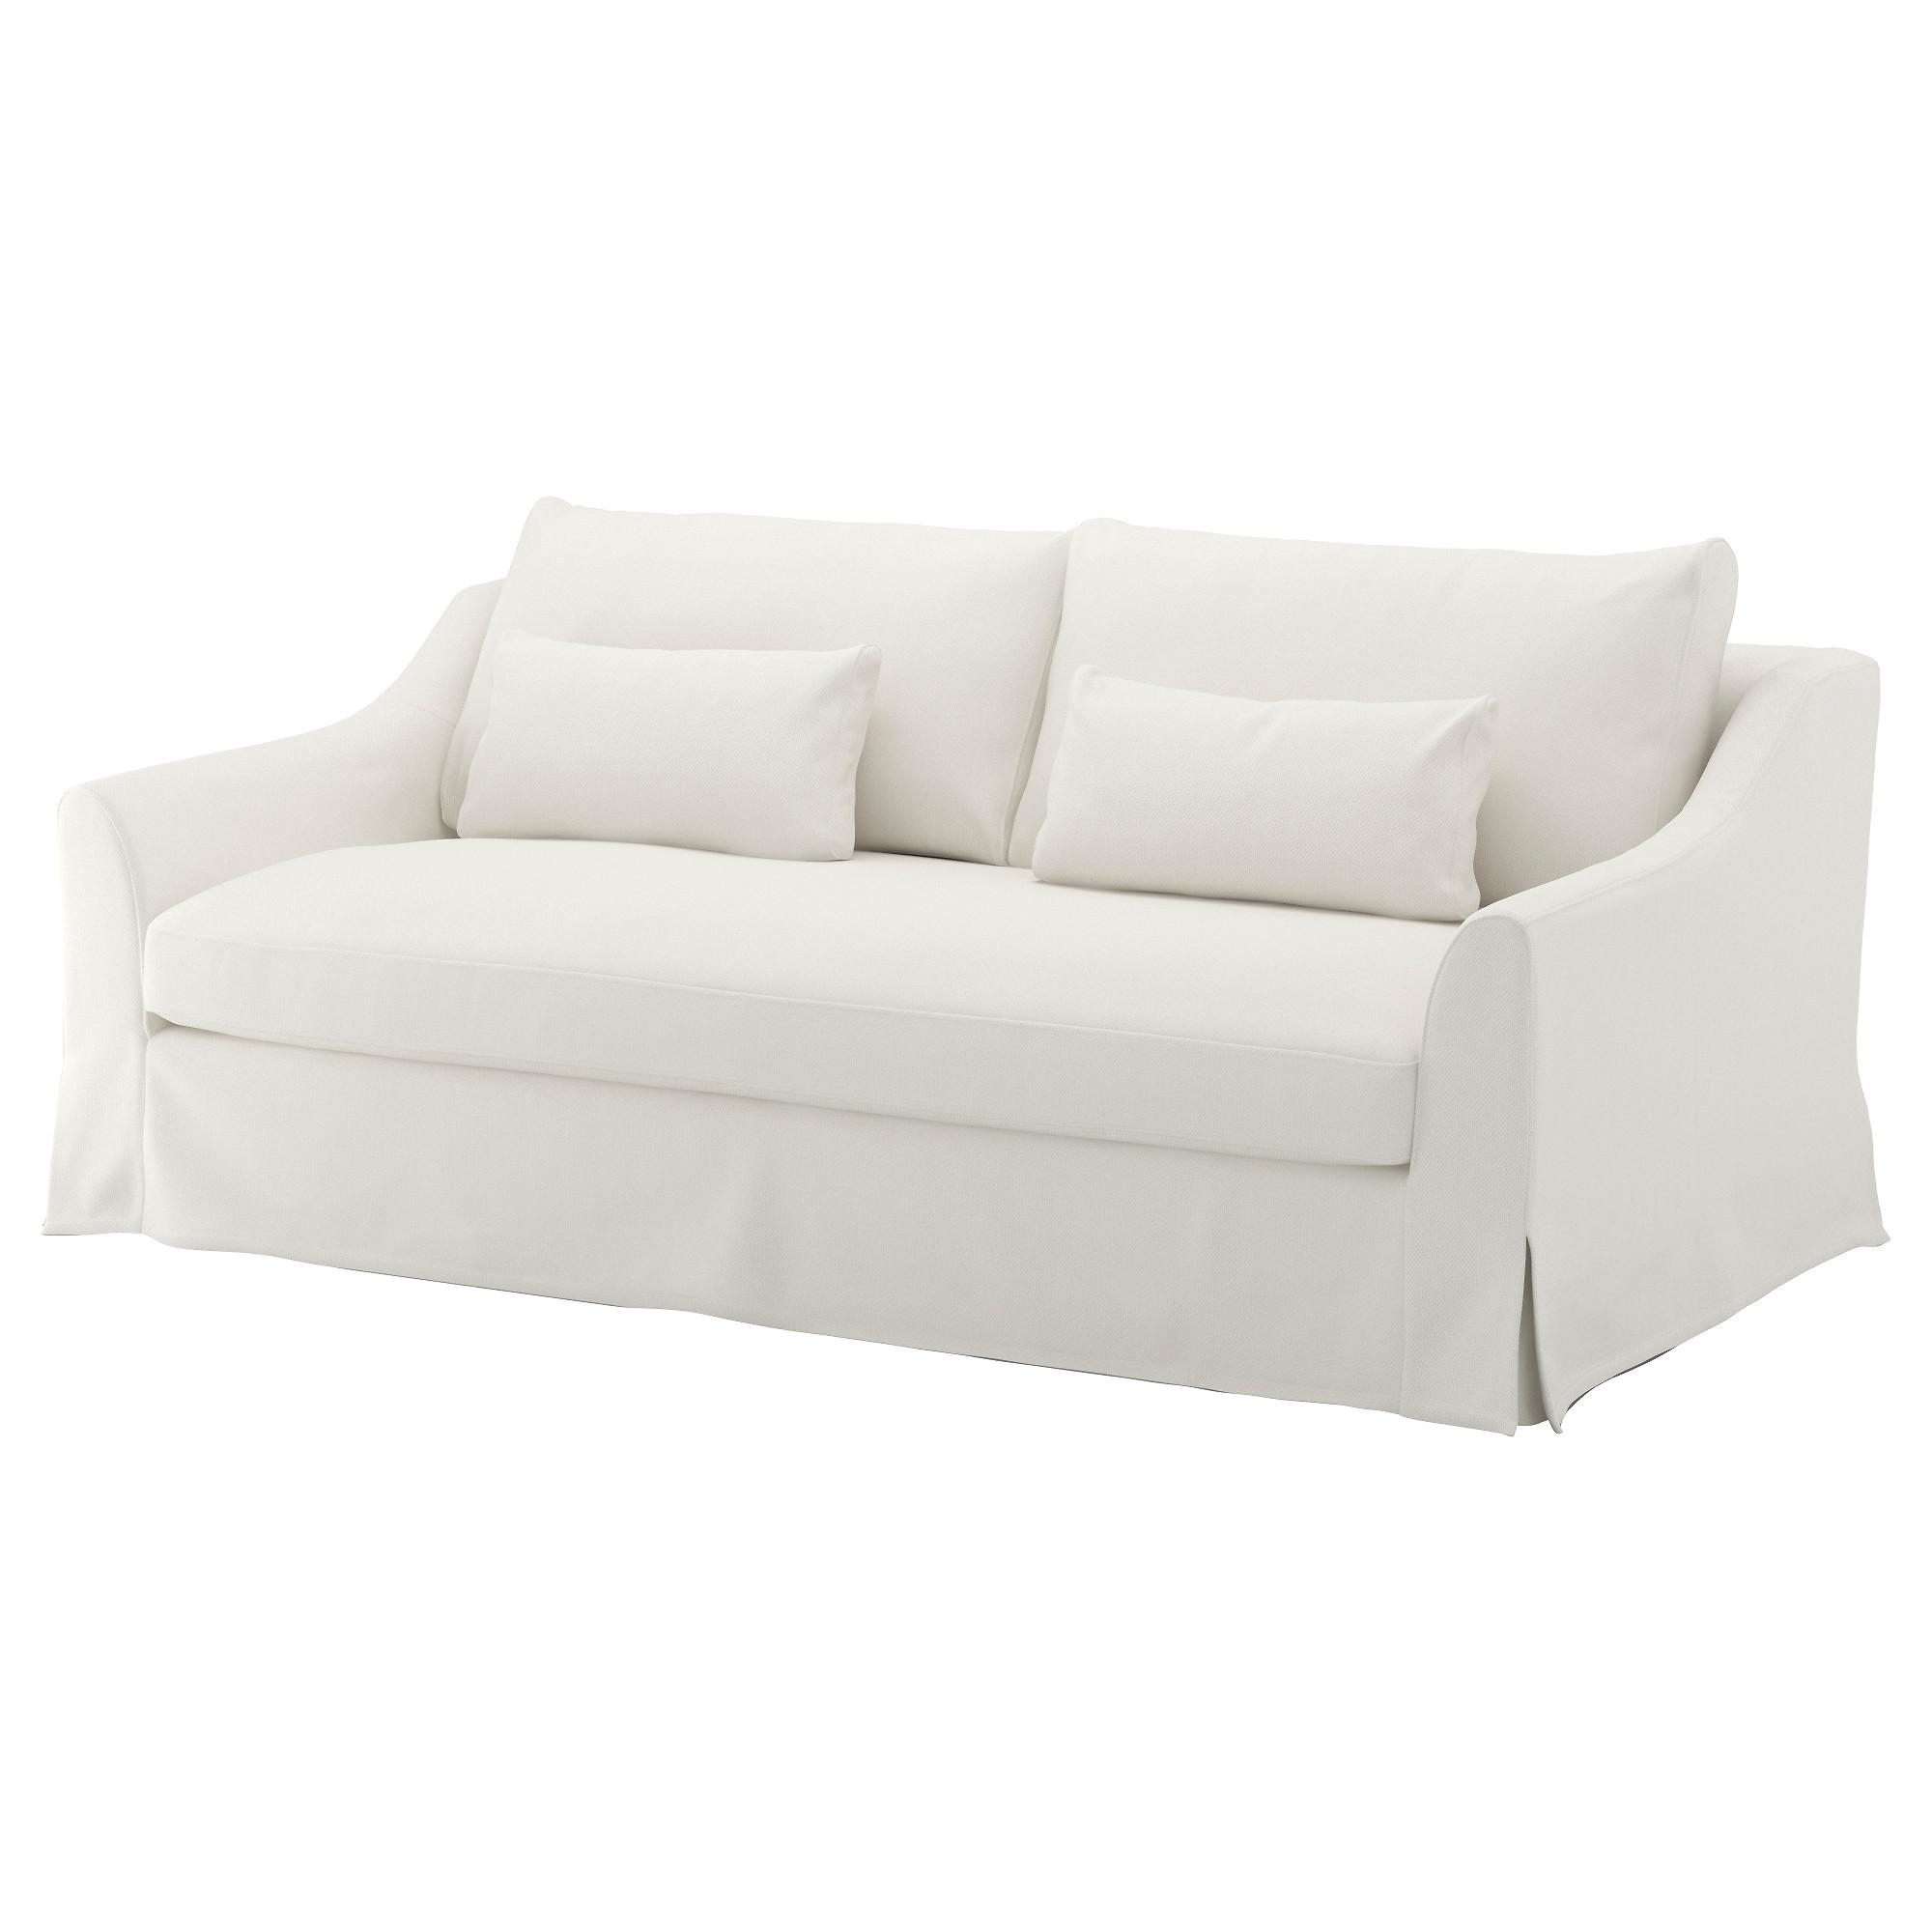 white sofa fabric cleaning sw london 20 43 choices of chairs ideas